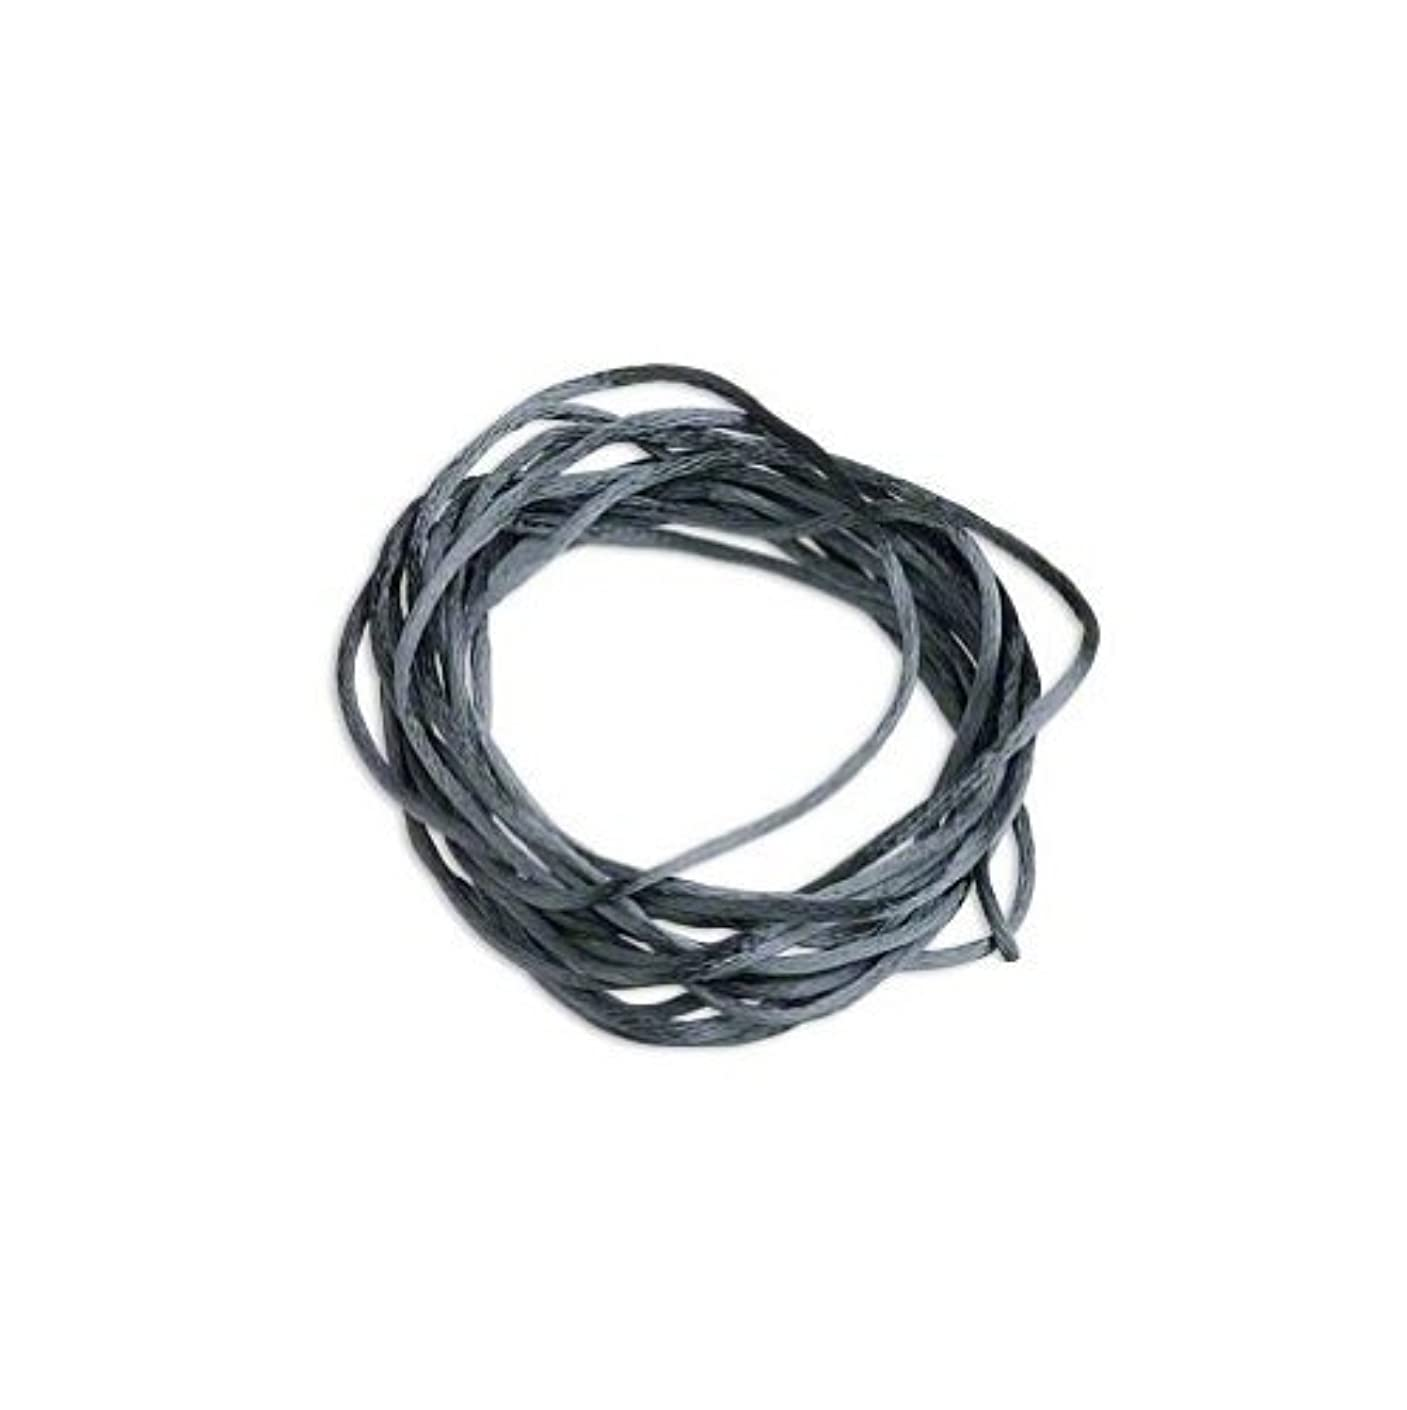 Satin Bugtail Cord Dark Grey 1mm. Section of 5 meters / 5.4 Yards.